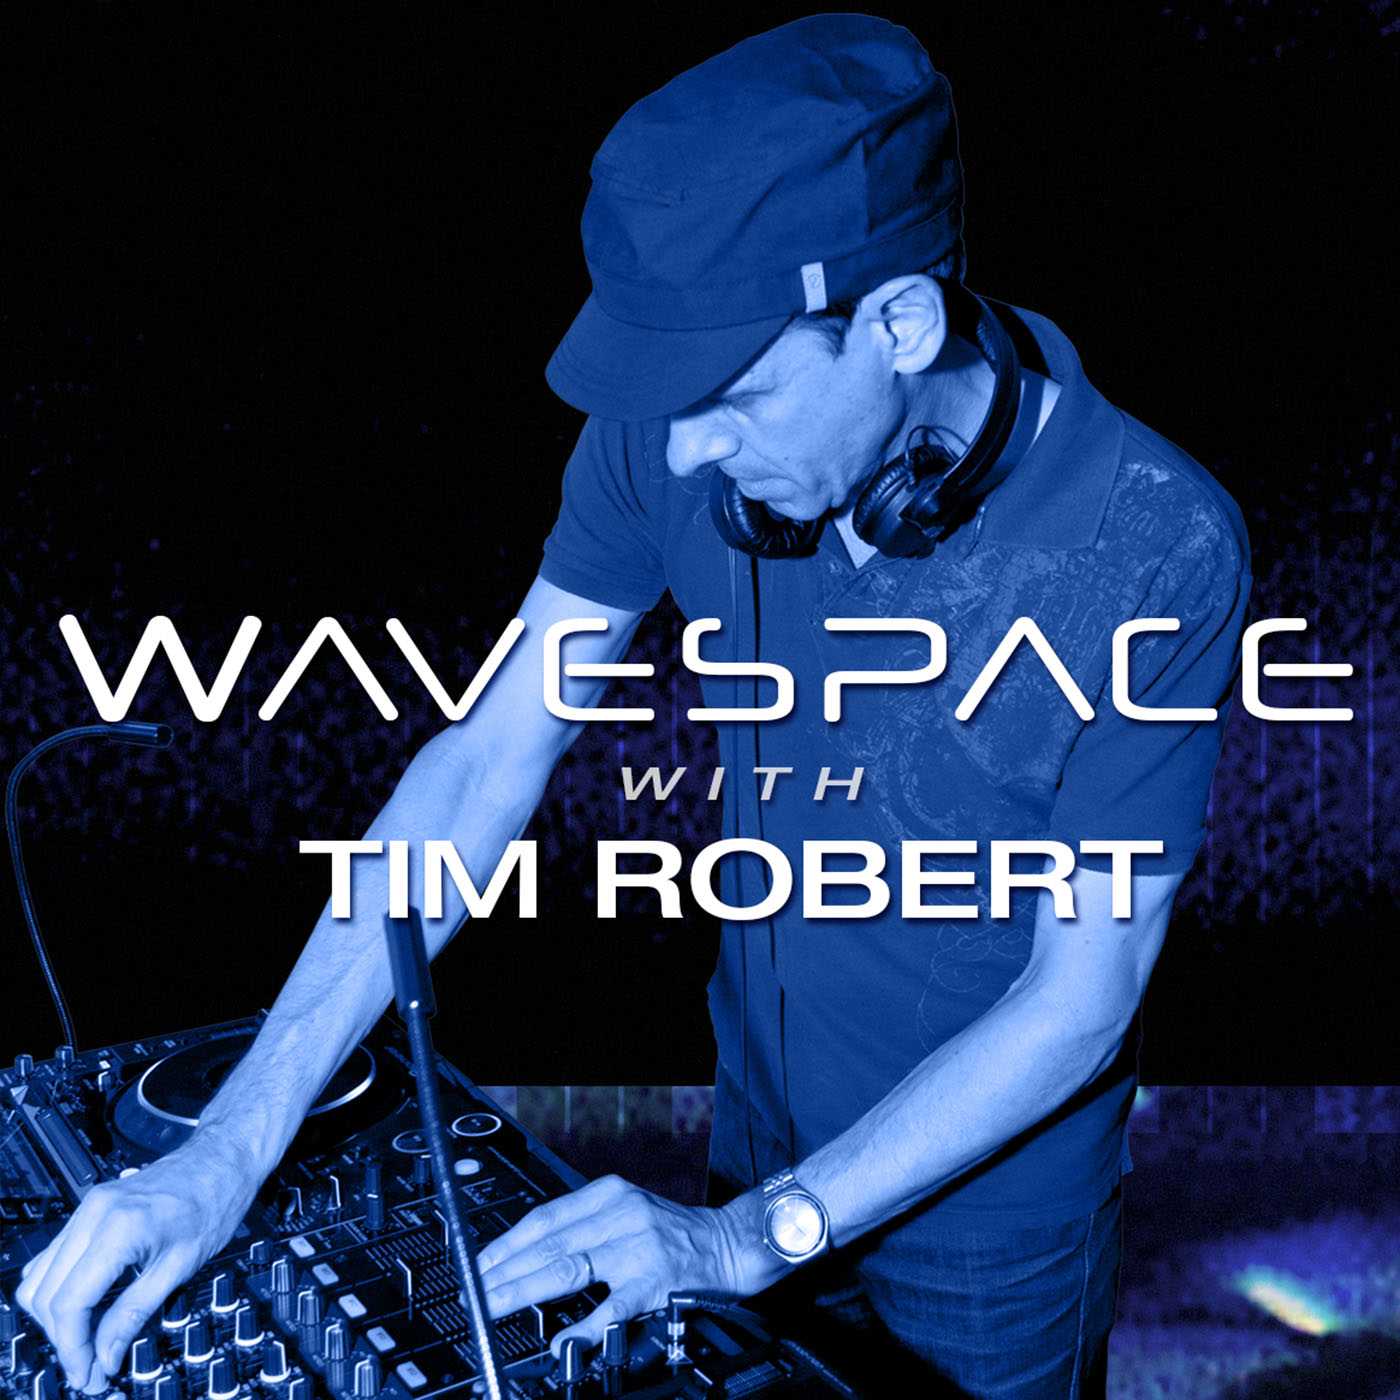 Wavespace